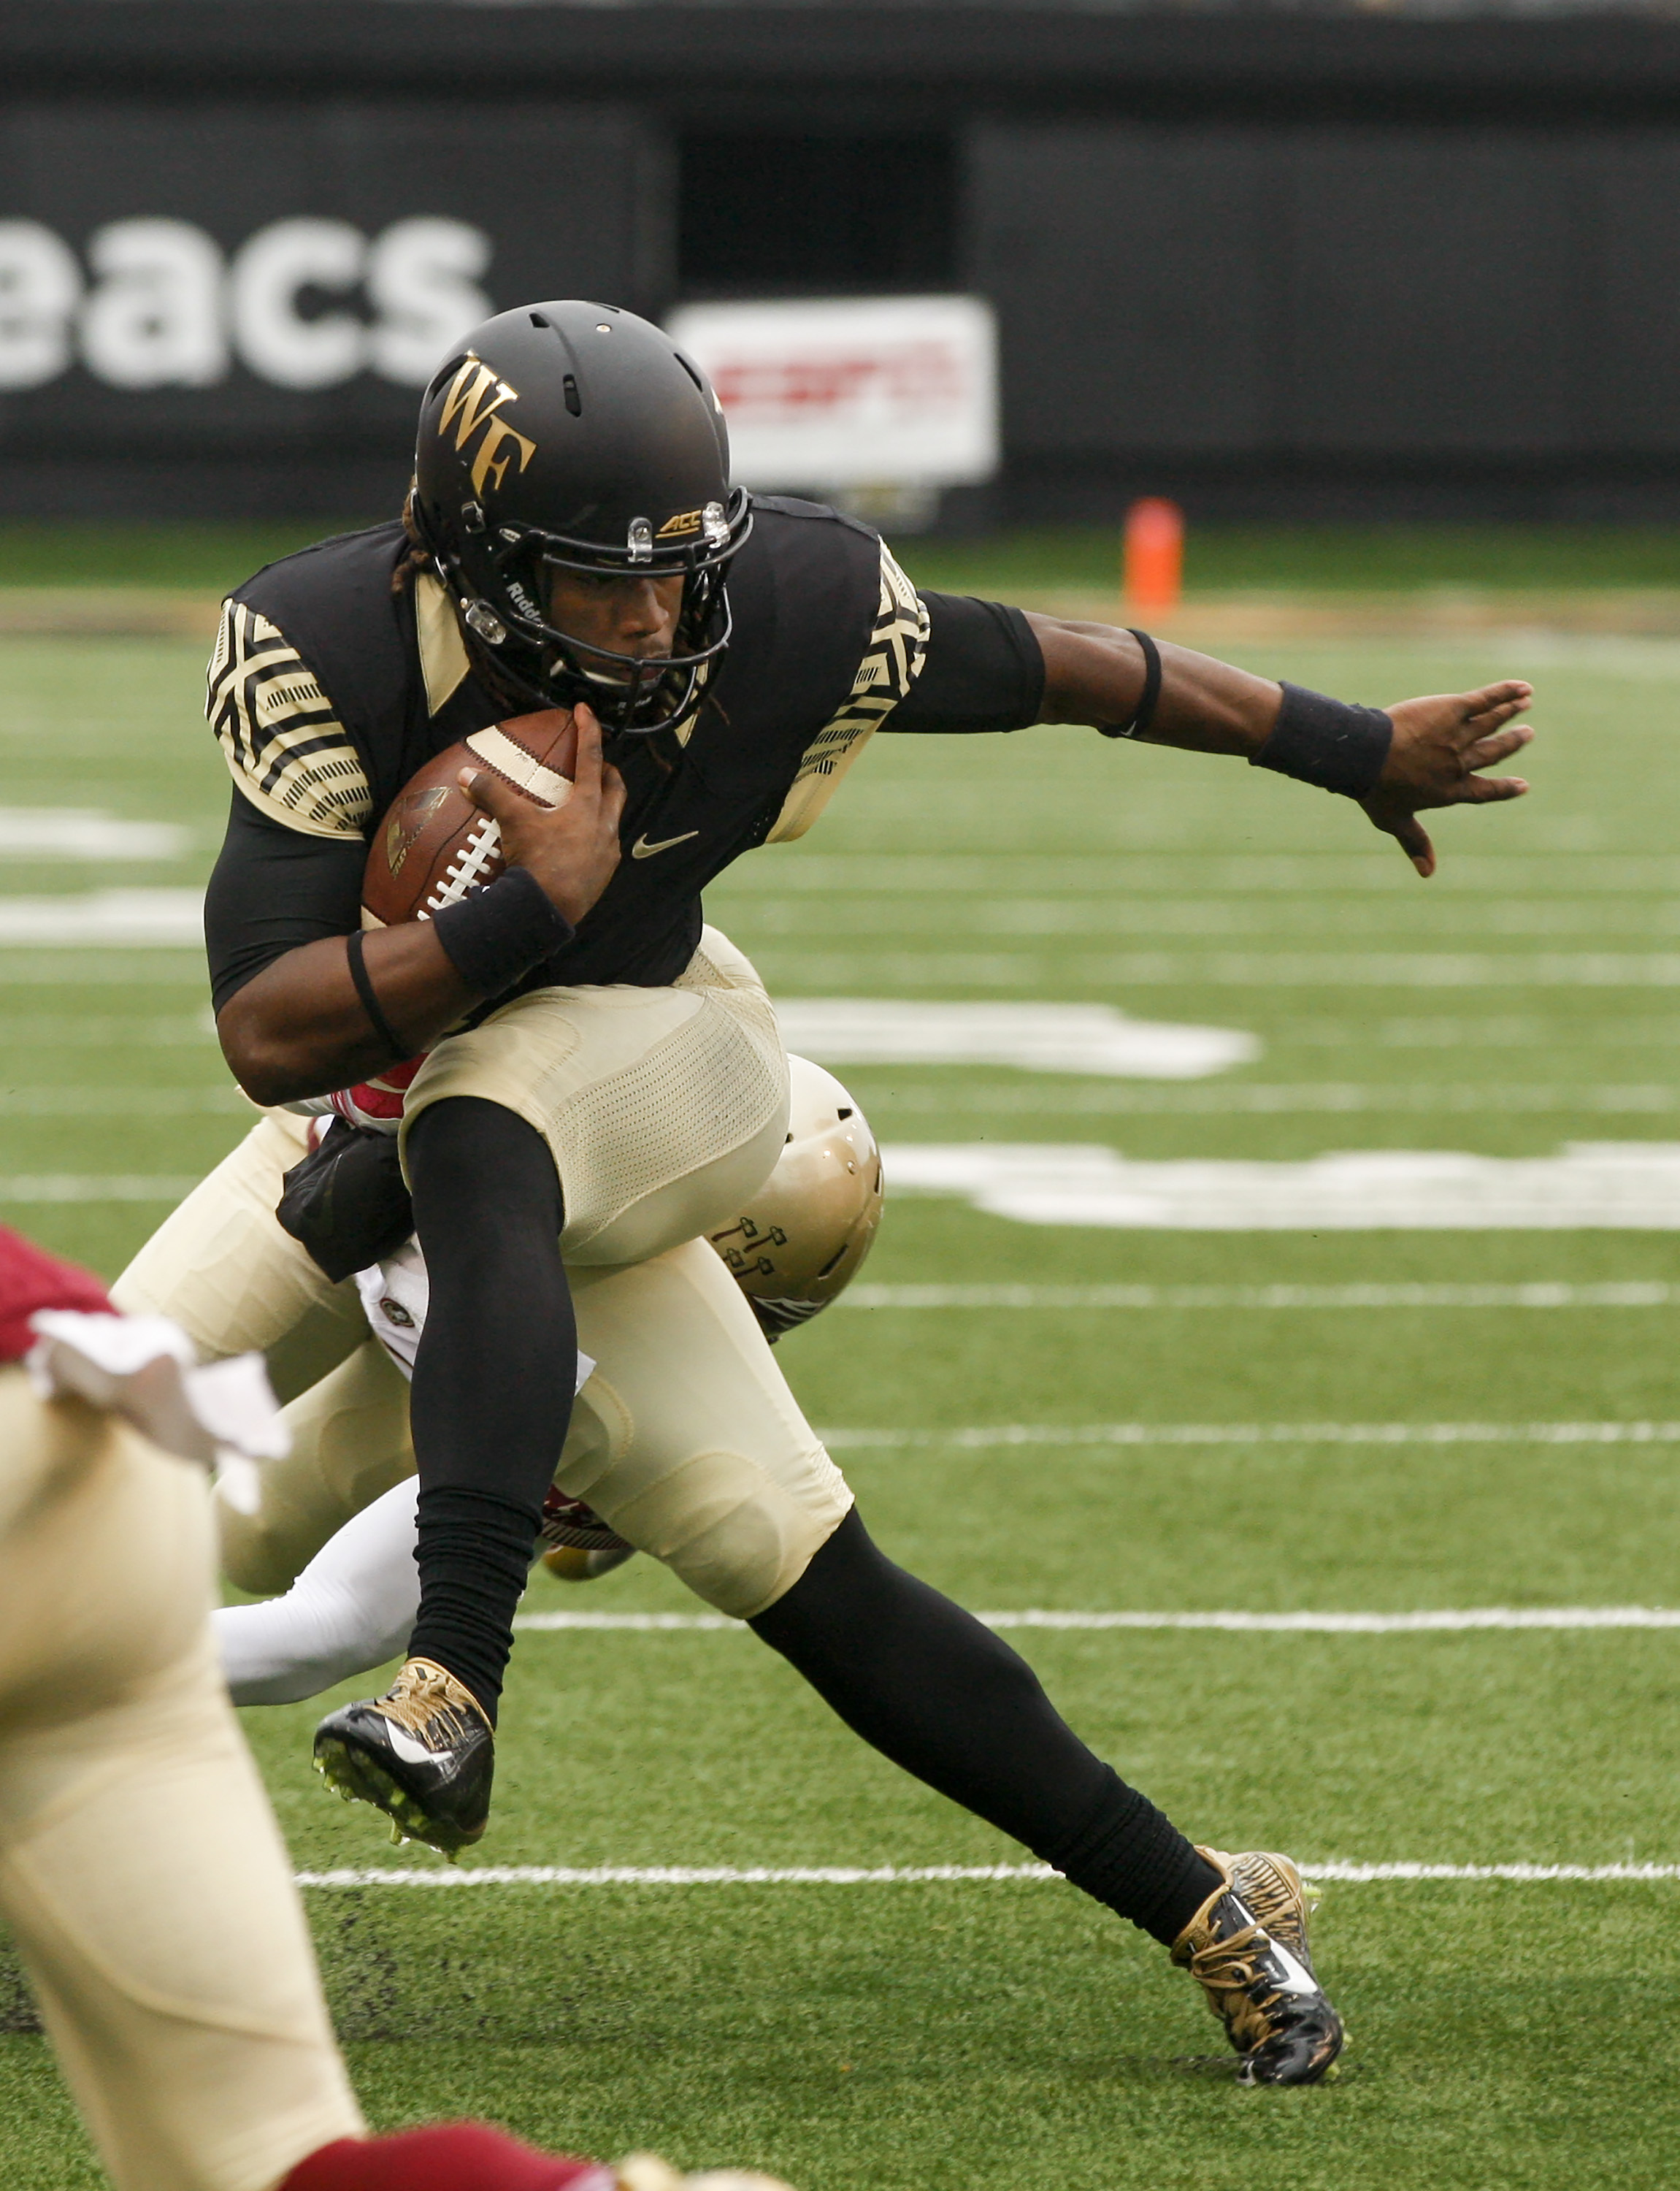 FILE - In this Oct. 3, 2015, file photo, Wake Forest quarterback Kendall Hinton tries to break a tackle as he carries the ball against Florida State in the first half of an NCAA college football game in Winston-Salem, N.C. Duke has handed the offense over